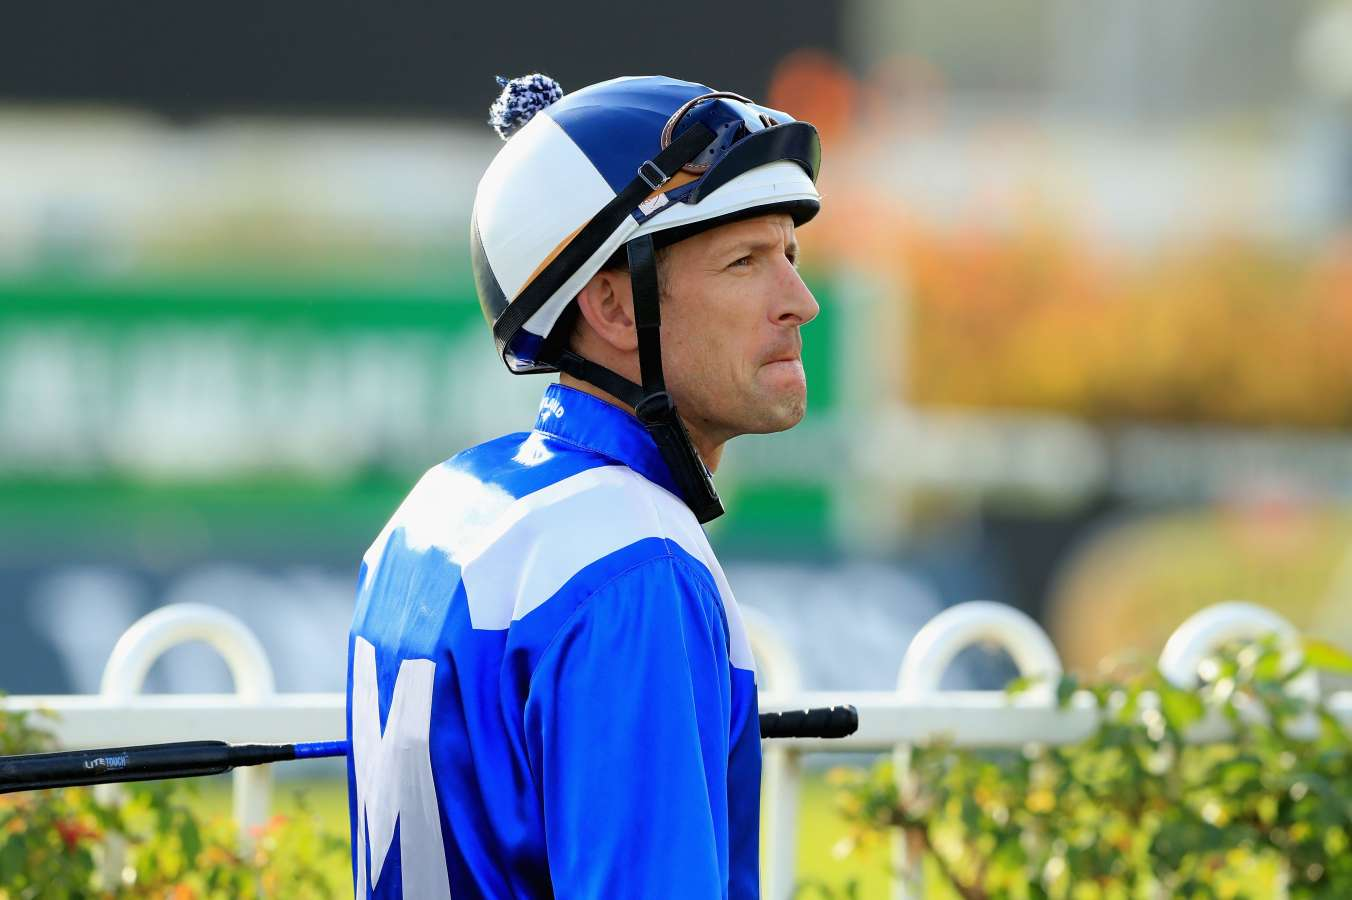 Bowman to miss Winx's Apollo launch